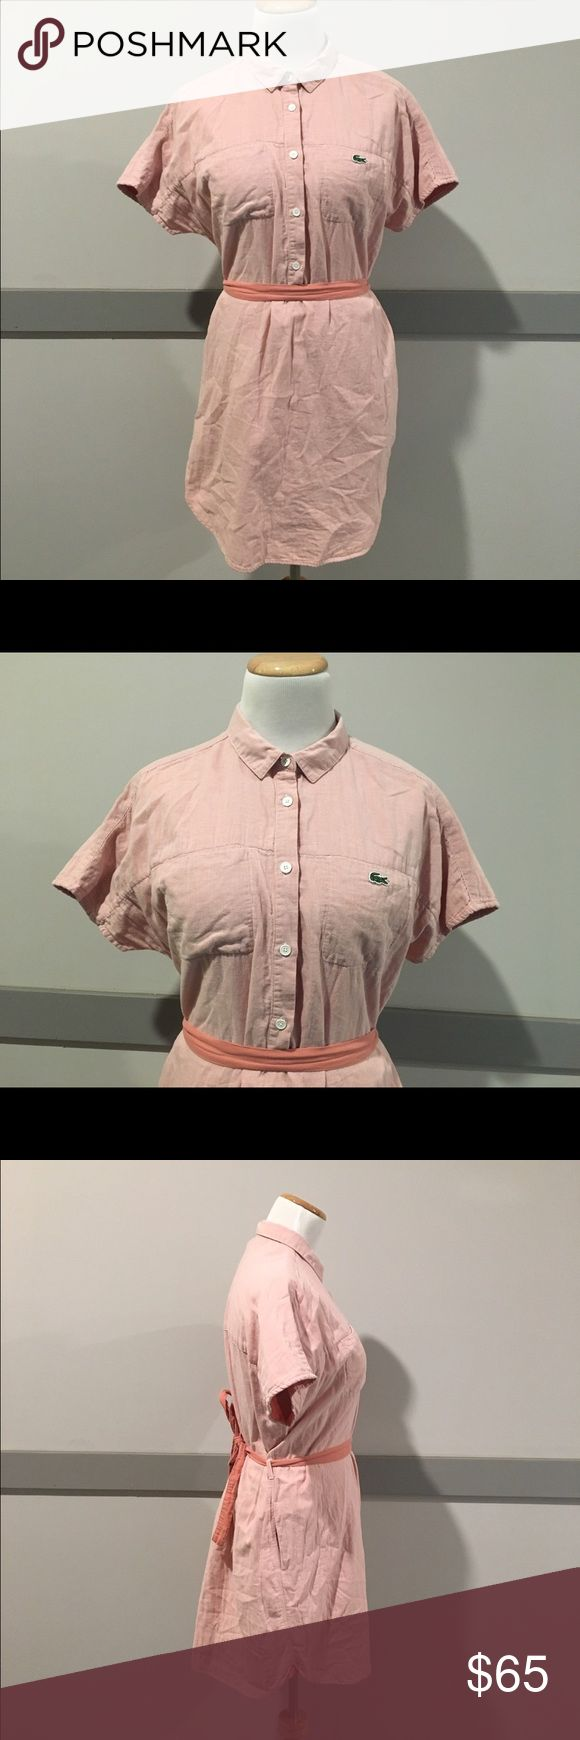 Lacoste Pink & white pinstripe shirt dress Perfect condition Lacoste pink pinstripe linen button up dress with tie belt. 100% cotton. Has pockets. 32 inches in length. Size 42 Lacoste Dresses Mini